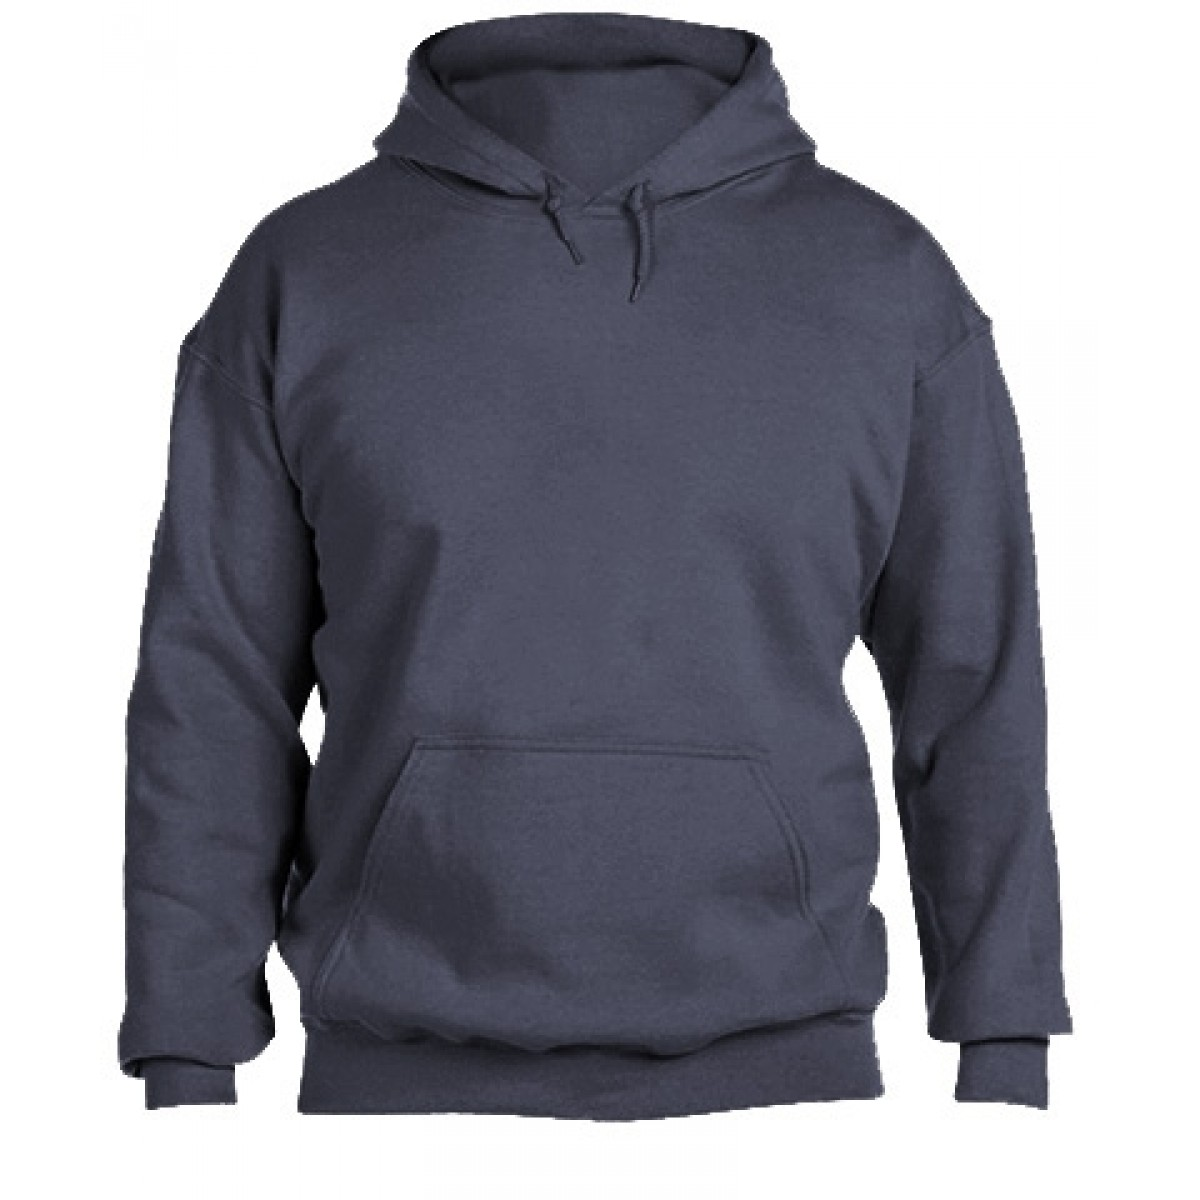 Solid Hooded Sweatshirt  50/50 Heavy Blend-Heather Navy-XL